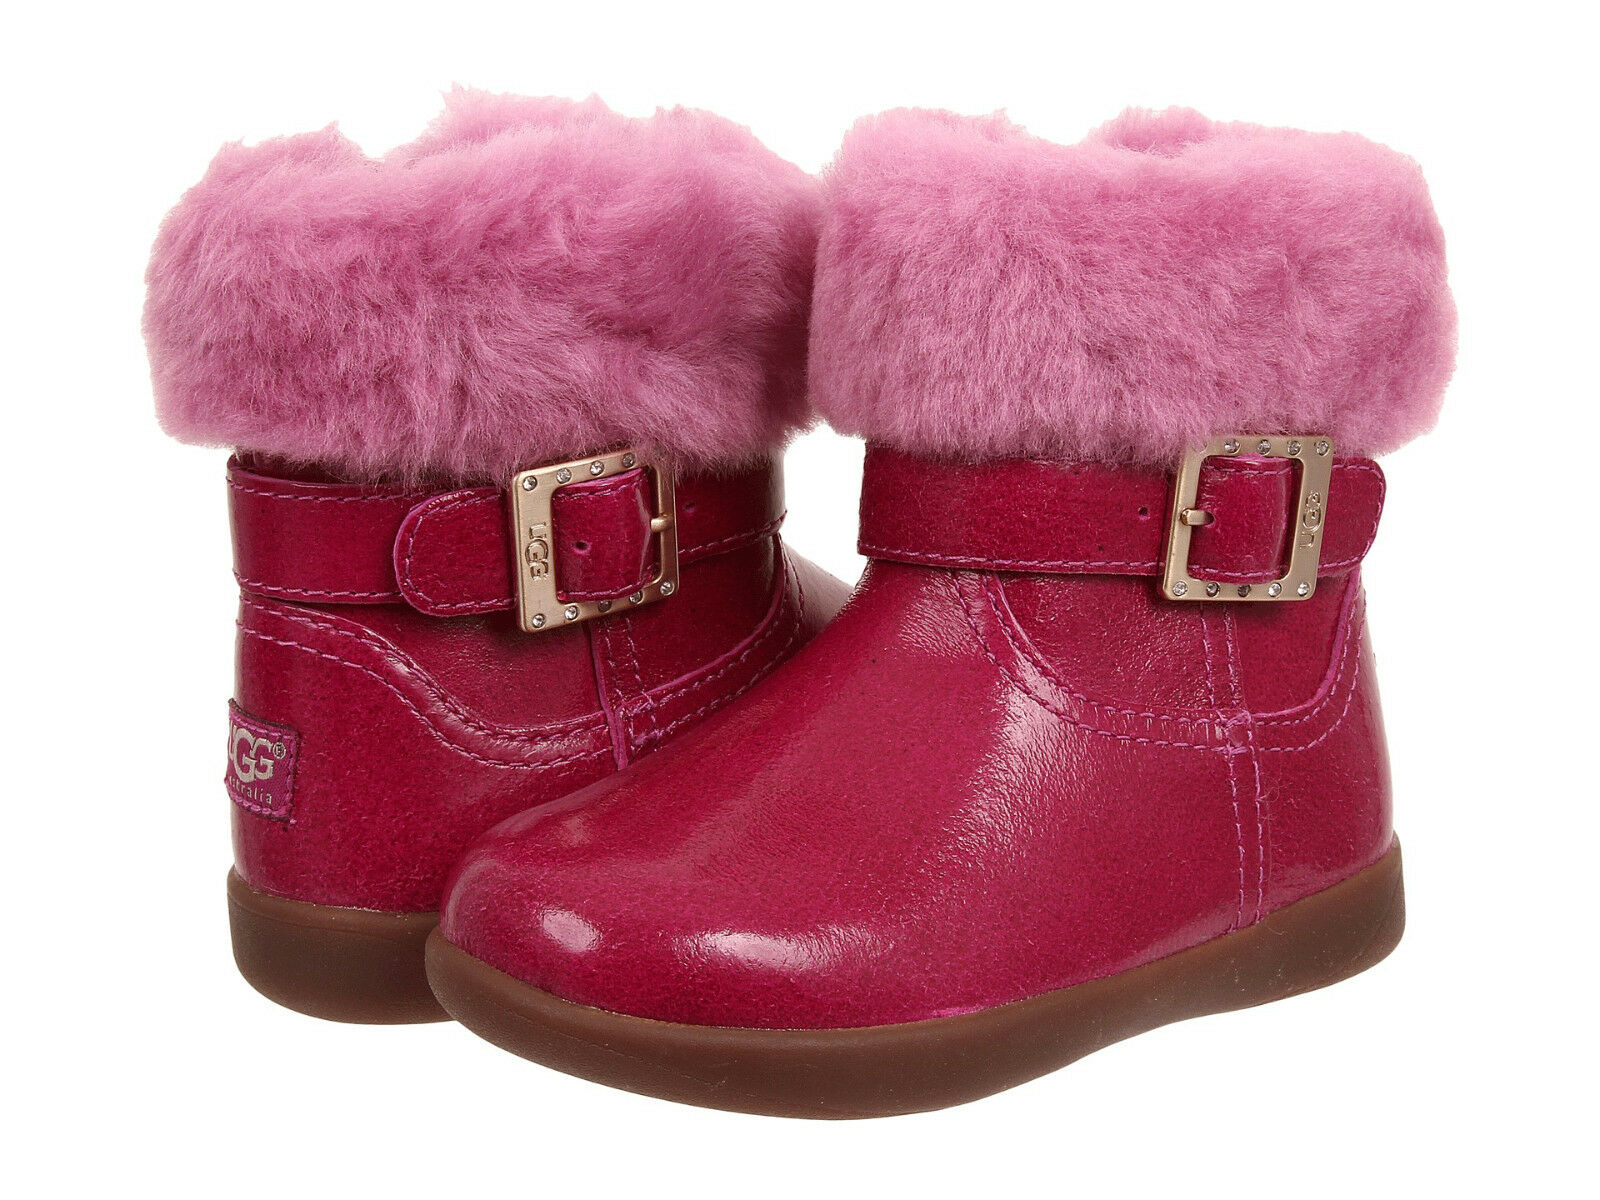 Toddler UGG Australia Gemma Patent Leather 1005149T V Pink 100% Authentic B. New